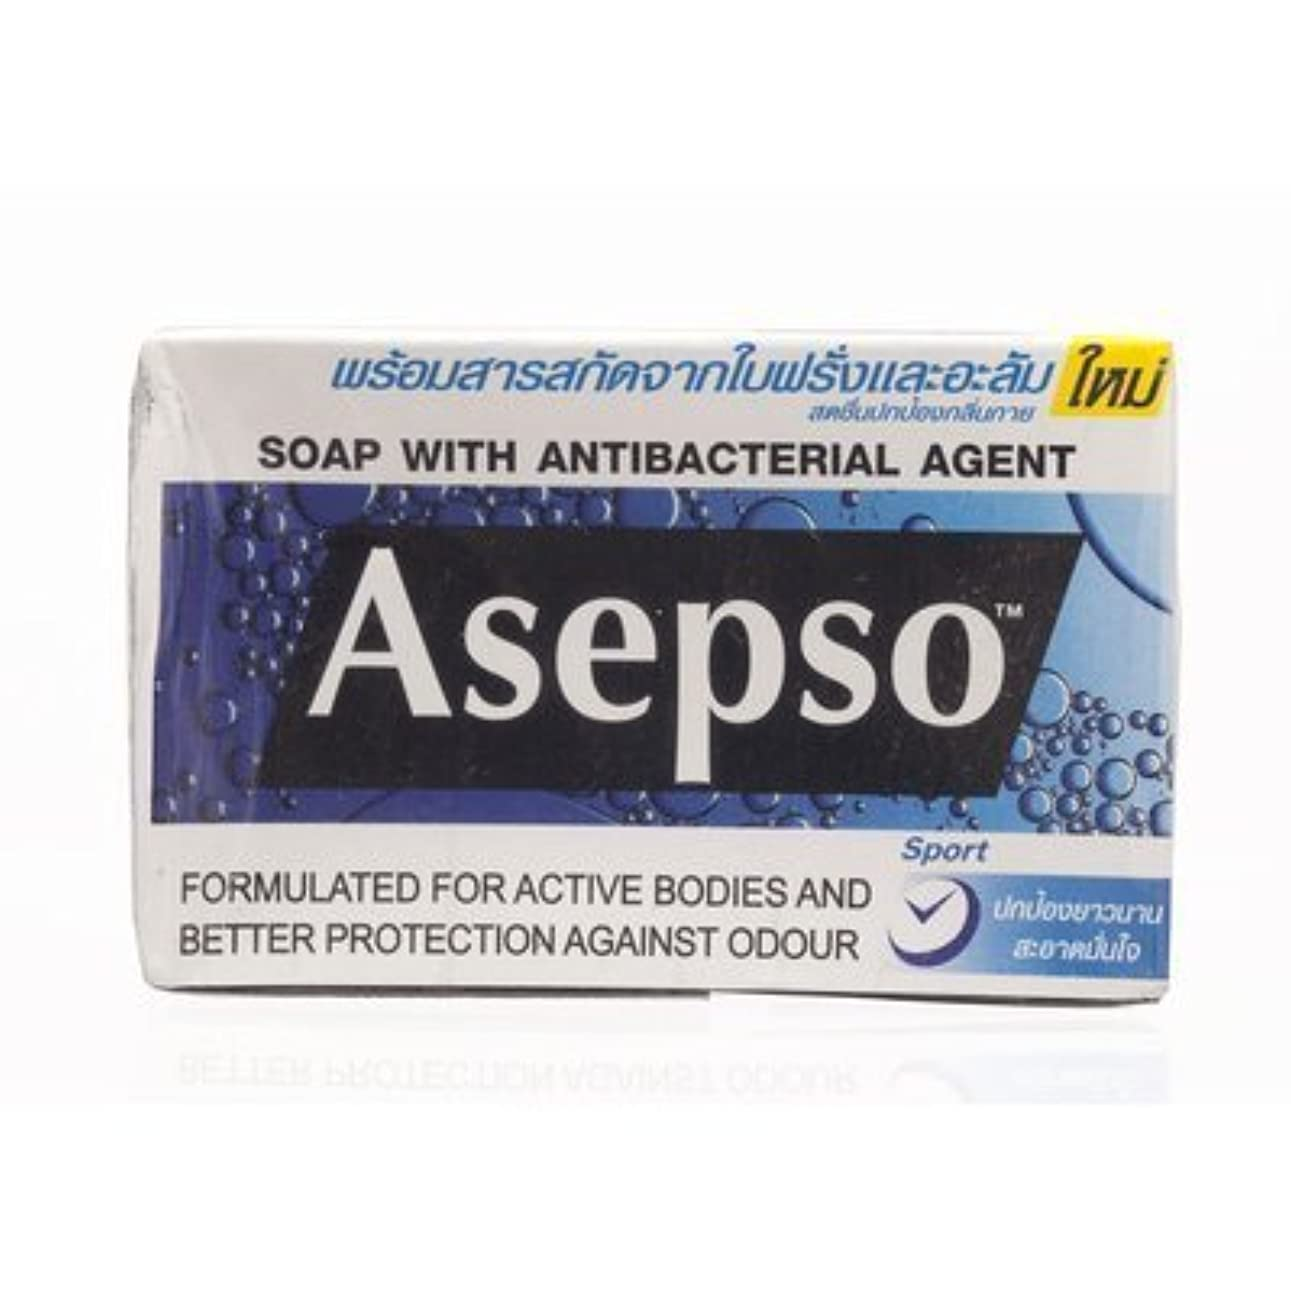 絶望的な航空水Asepso Bar Soap Sport 80g. (Pack of 6) by Asepso [並行輸入品]